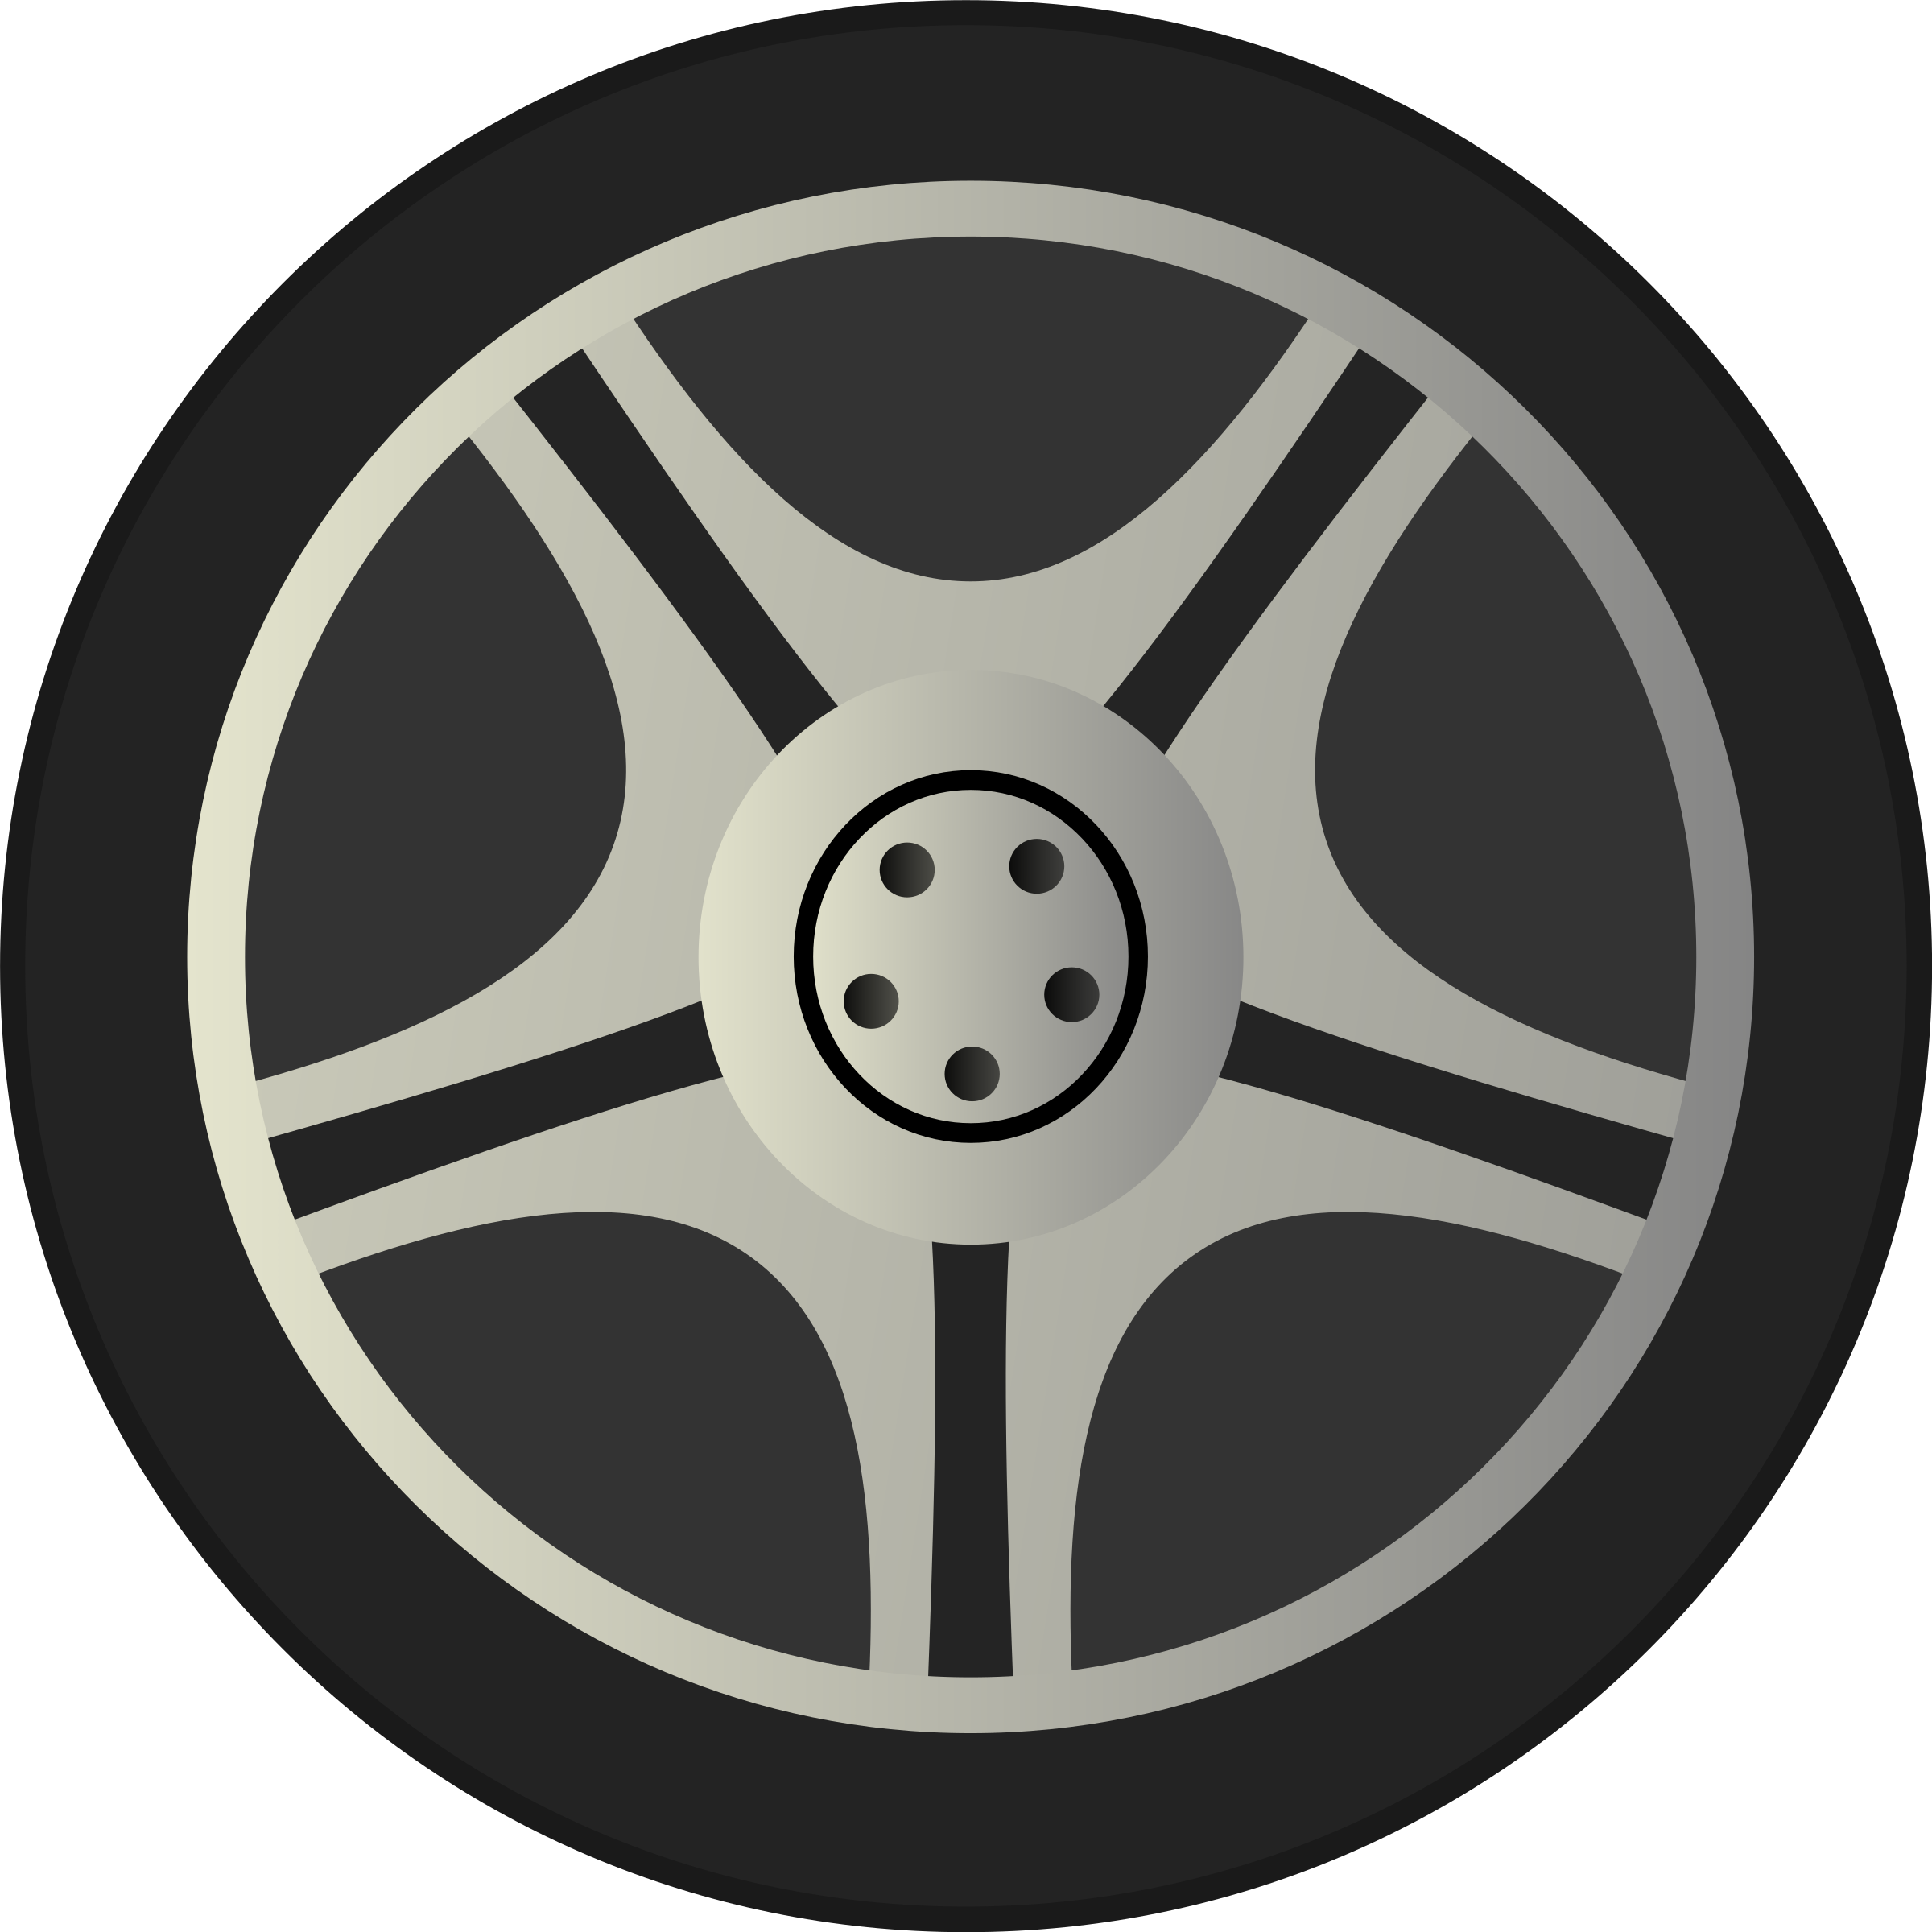 Tire clipart png. Collection of high